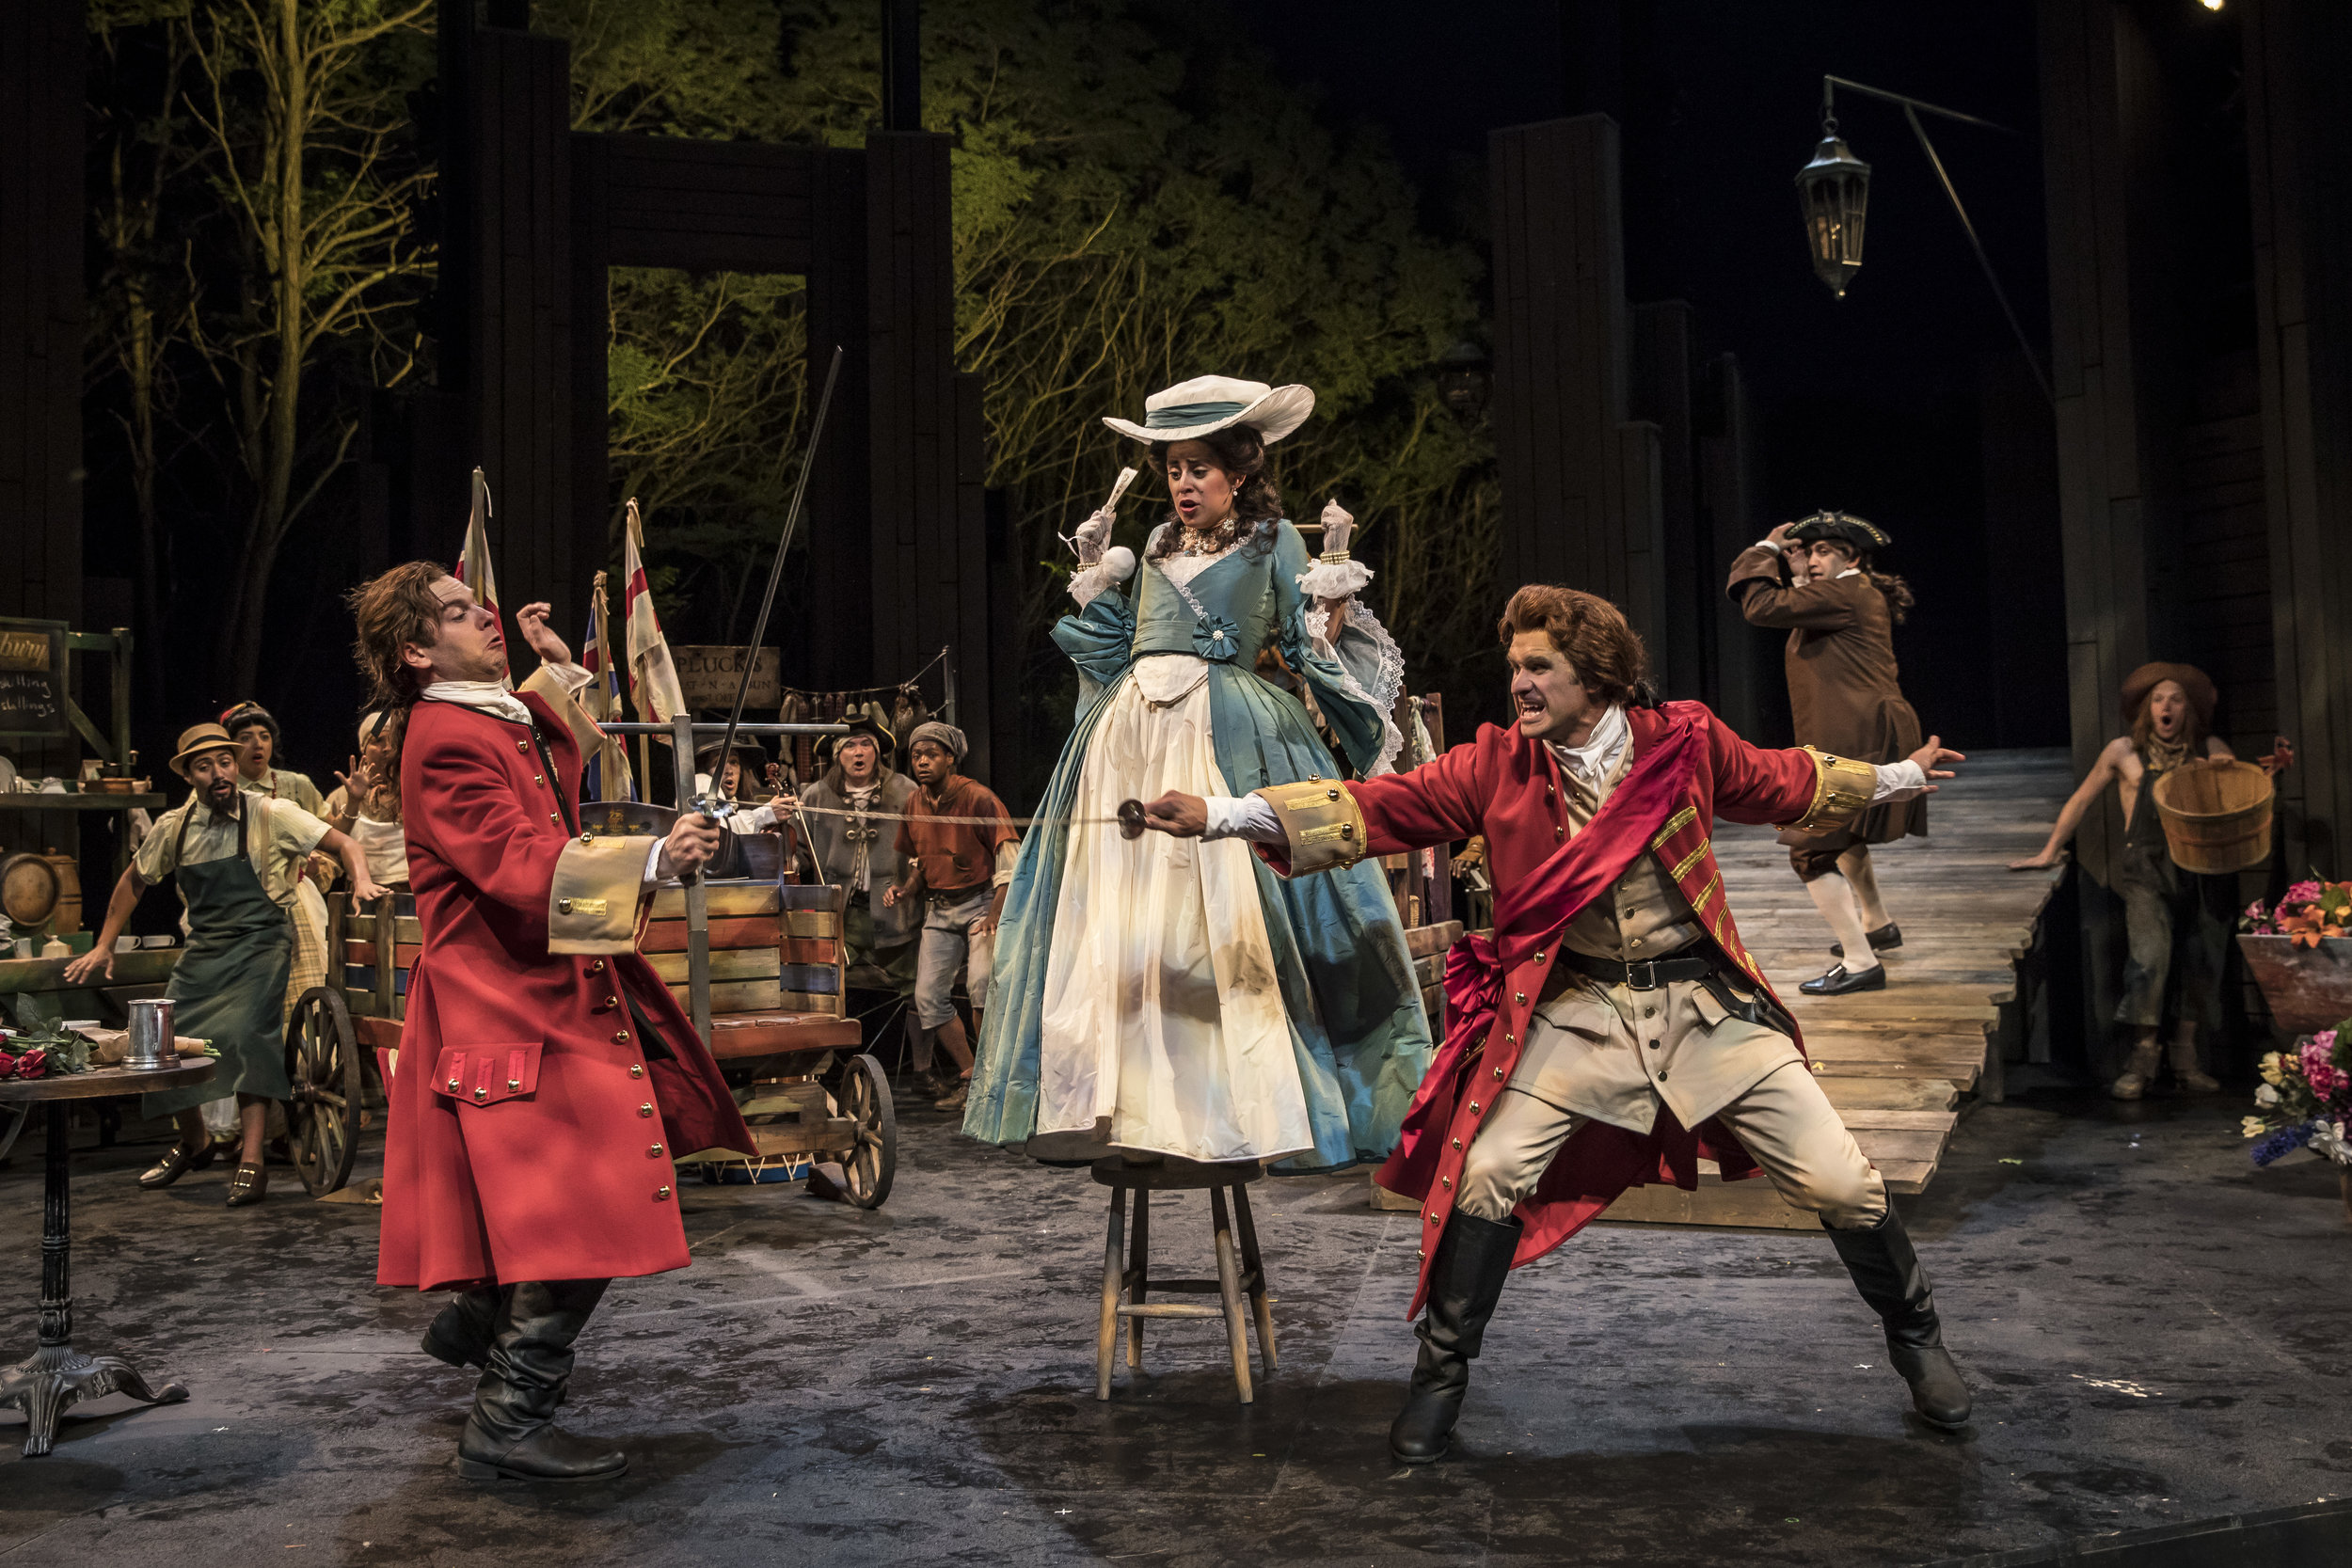 Nate Burger, Andrea San Miguel & Marcus Truschinski (foreground), The Recruiting Officer, 2018. Photo by Liz Lauren.